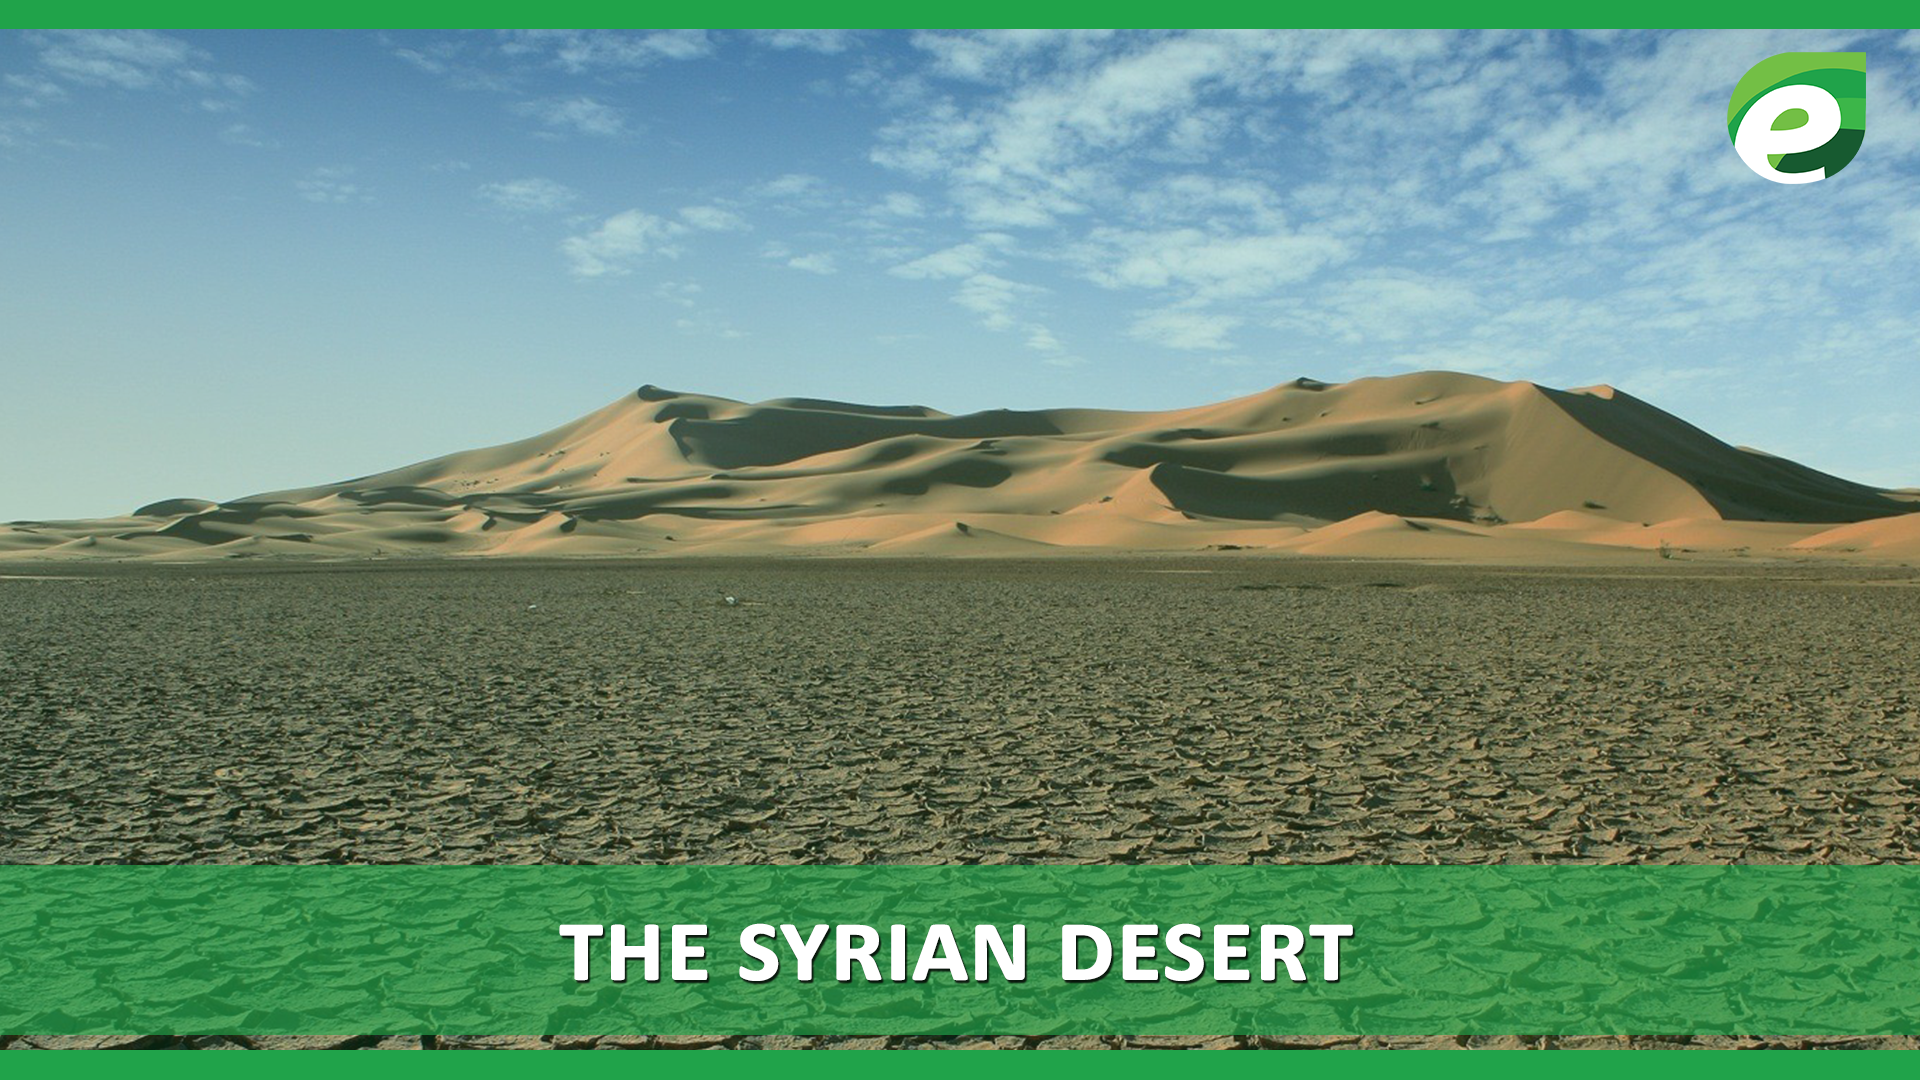 Hottest Deserts of the World- The Syrian Desert